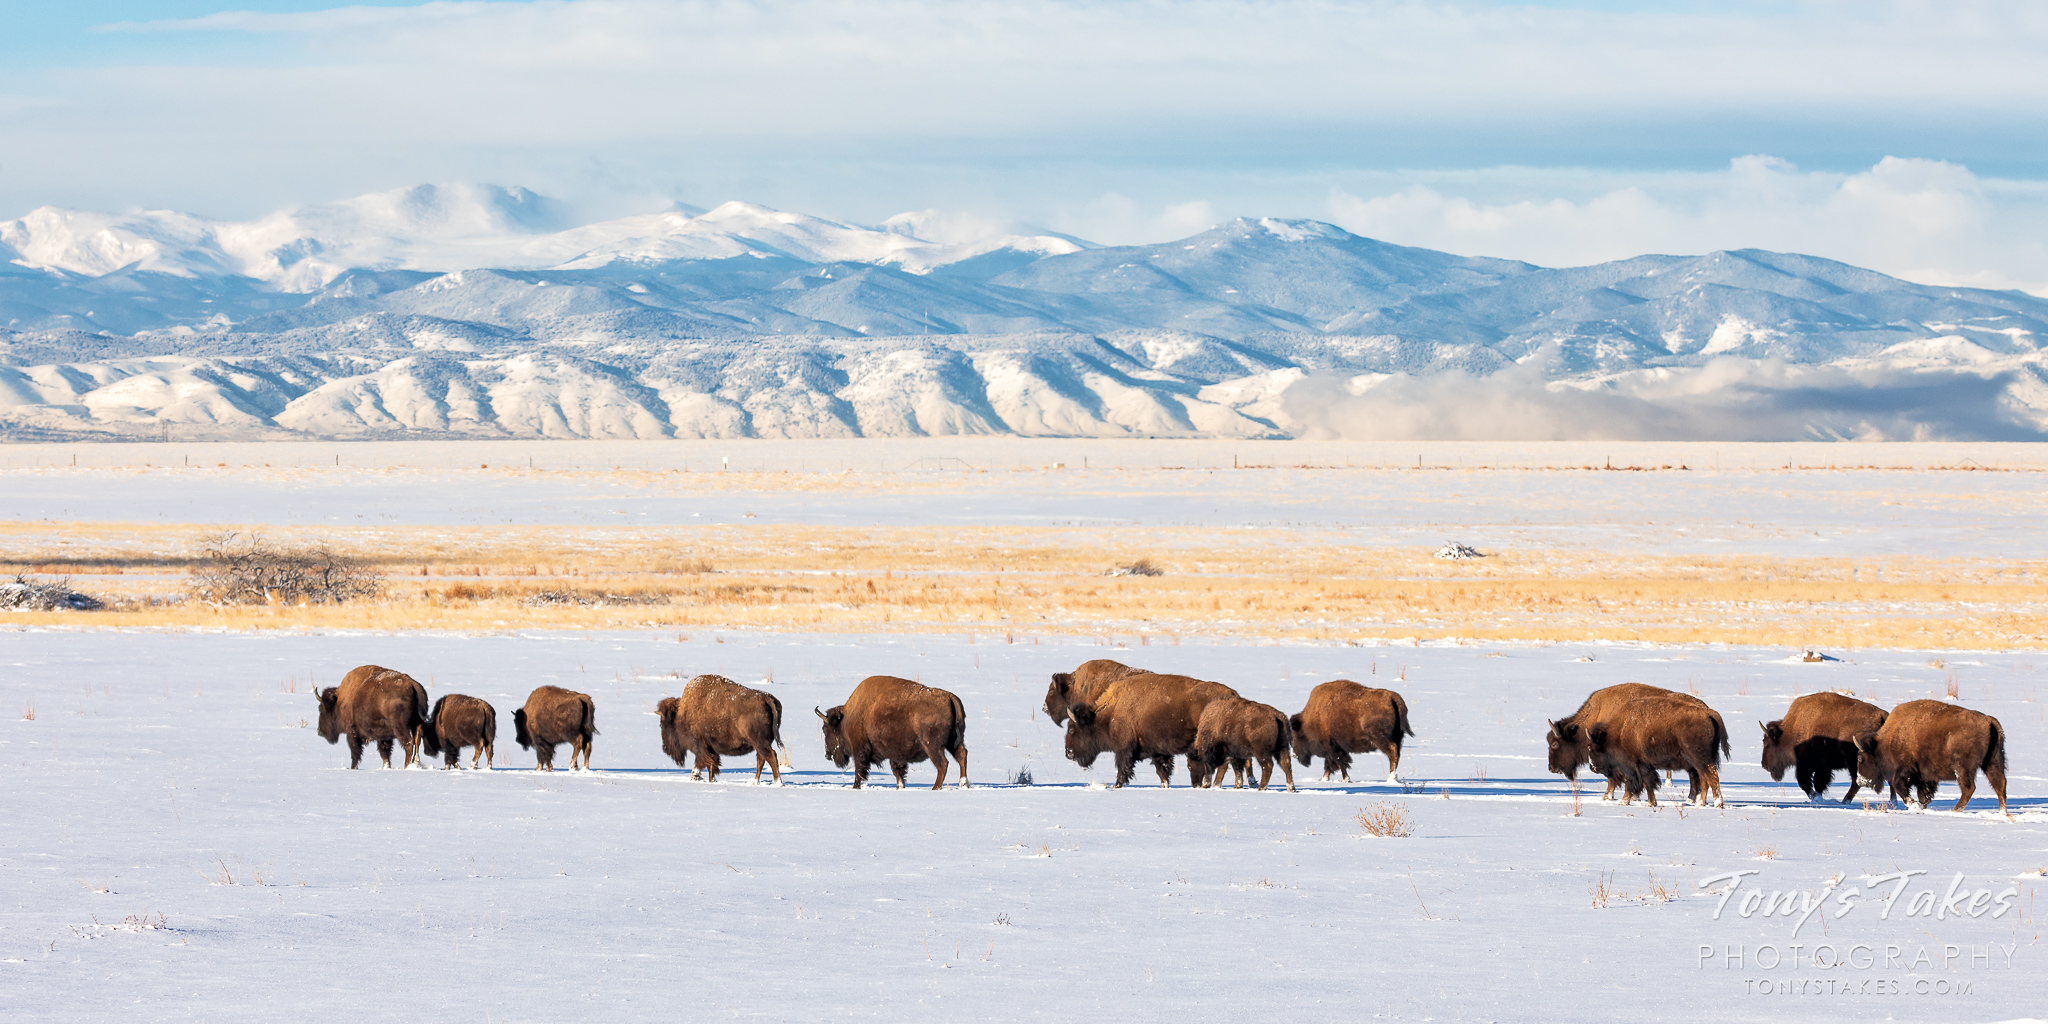 Bison herd on the move on the snow-covered Great Plains